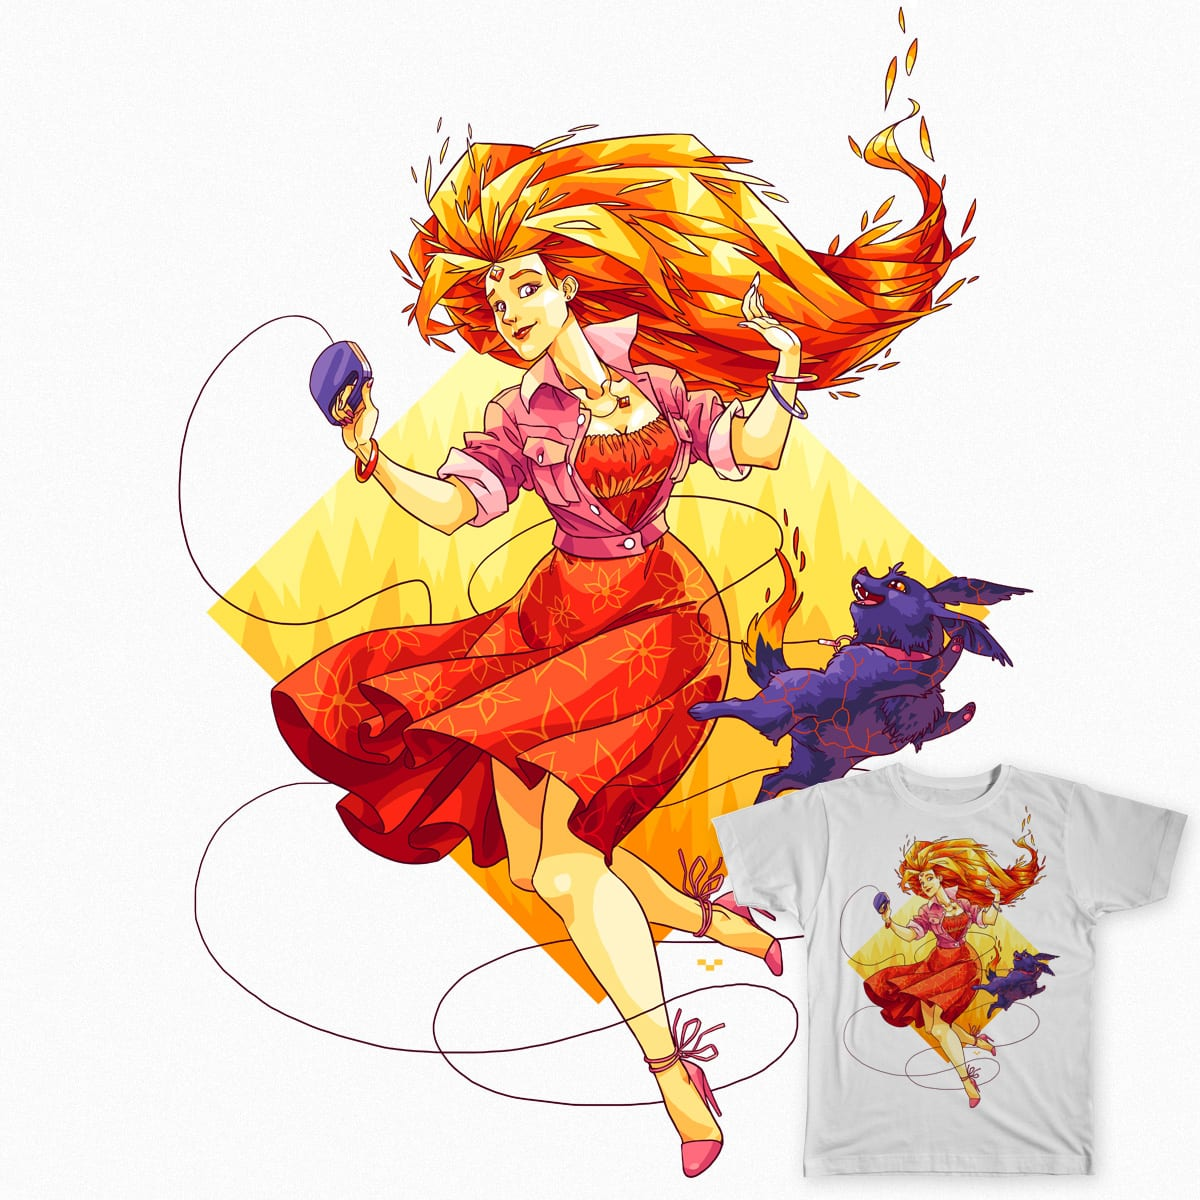 Flame chick by Ap6y3 on Threadless